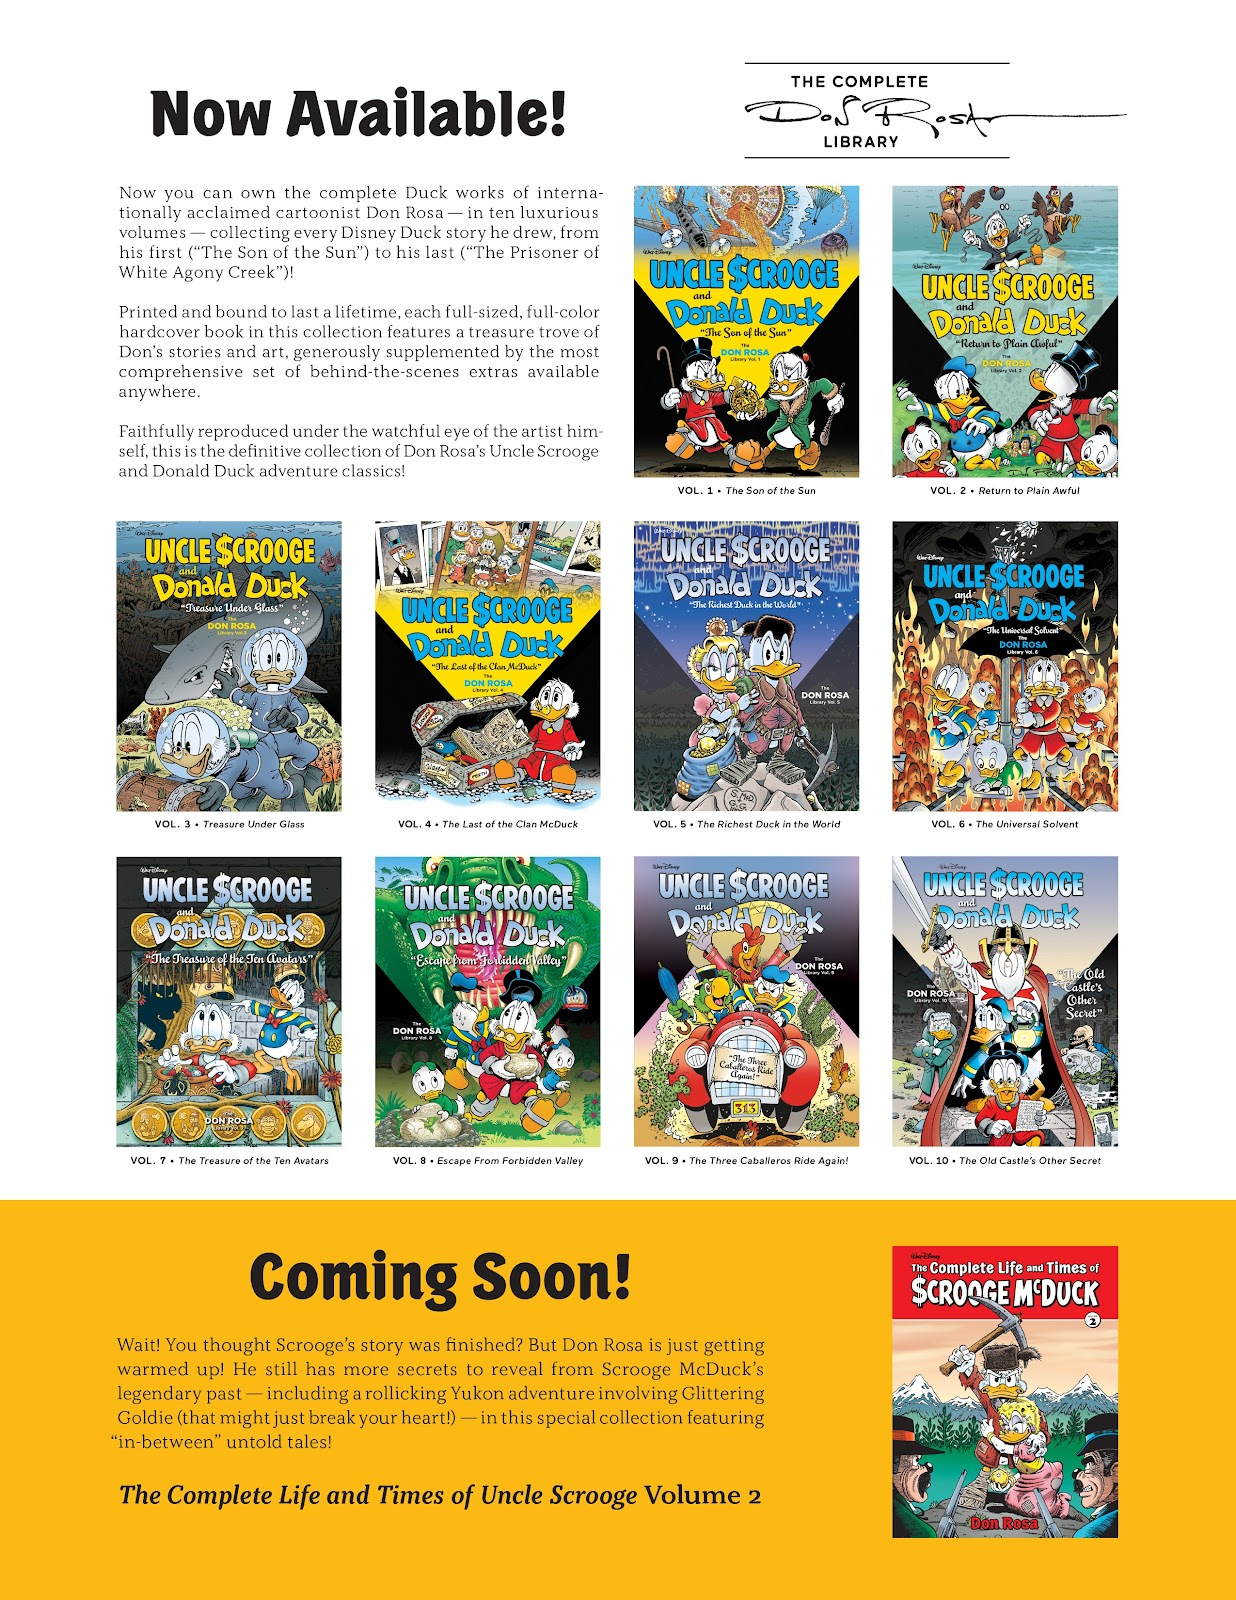 Read online The Complete Life and Times of Scrooge McDuck comic -  Issue # TPB 1 (Part 2) - 121